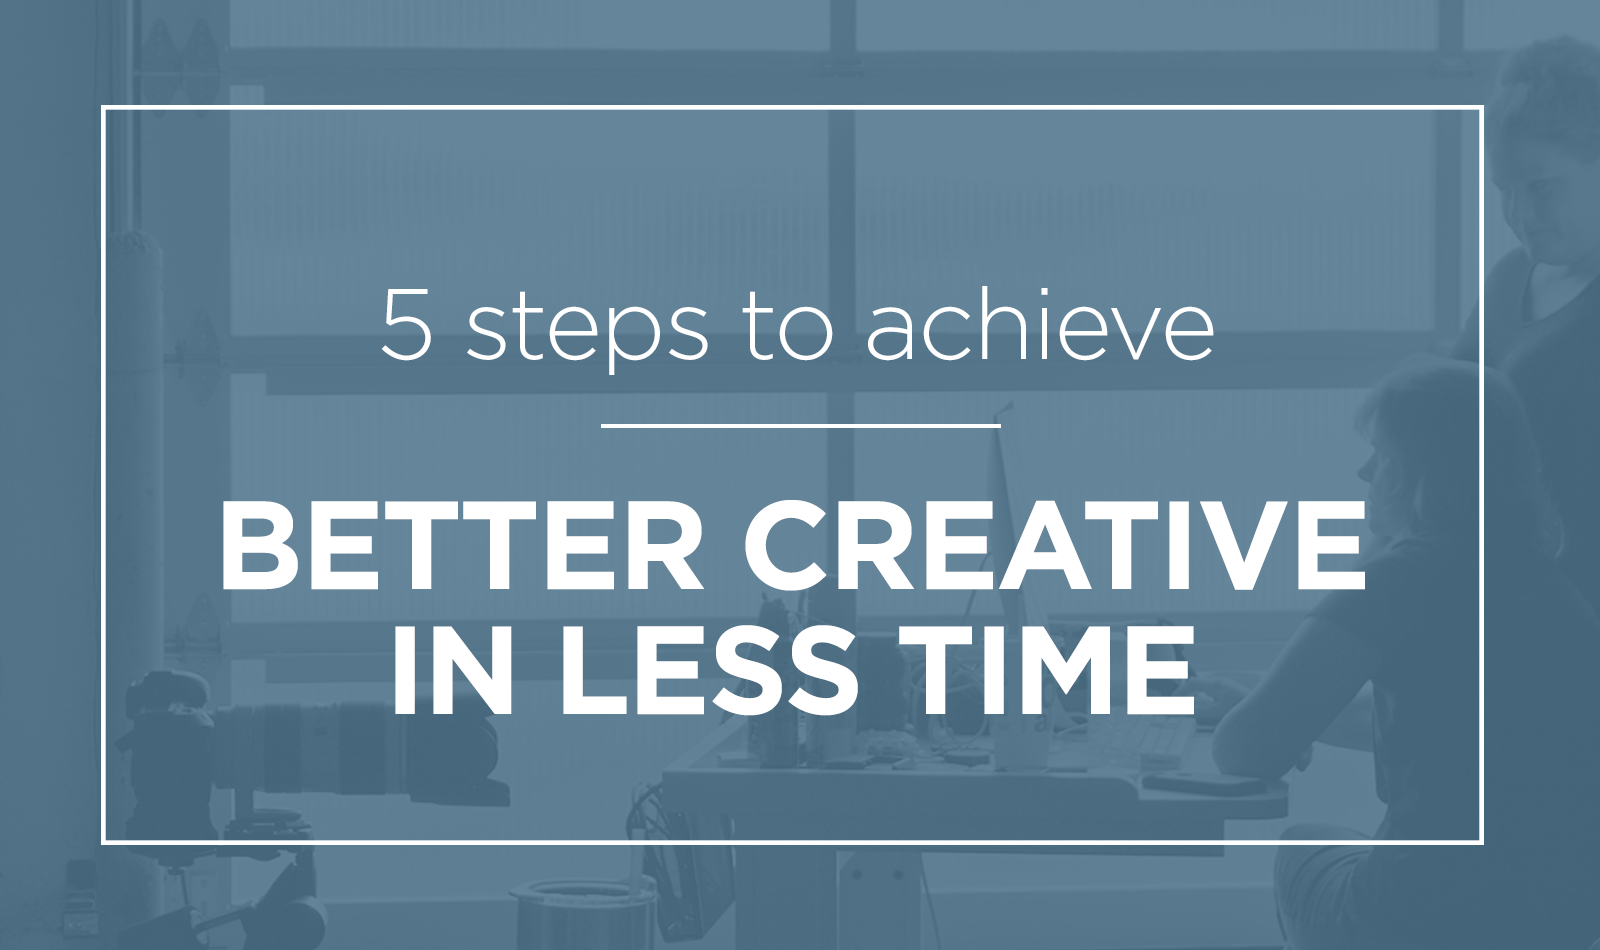 better-creative-less-time-feat